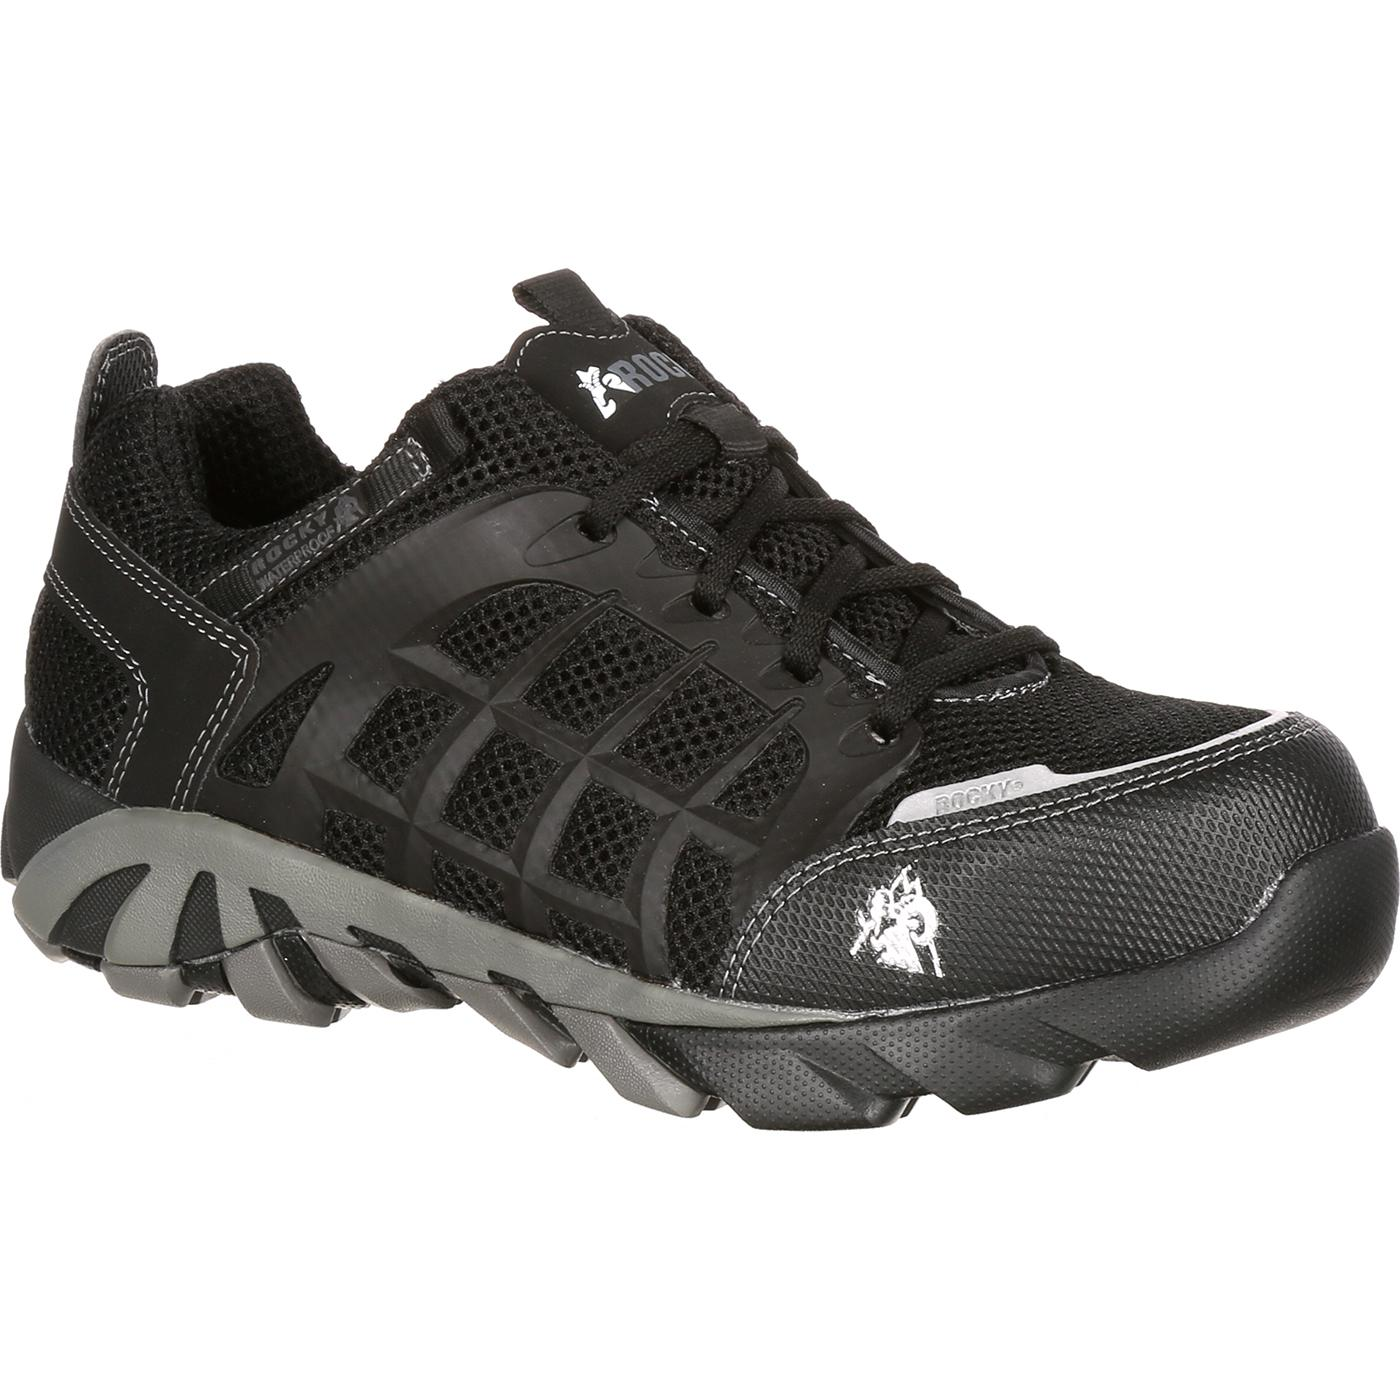 Keen Shoes Wide